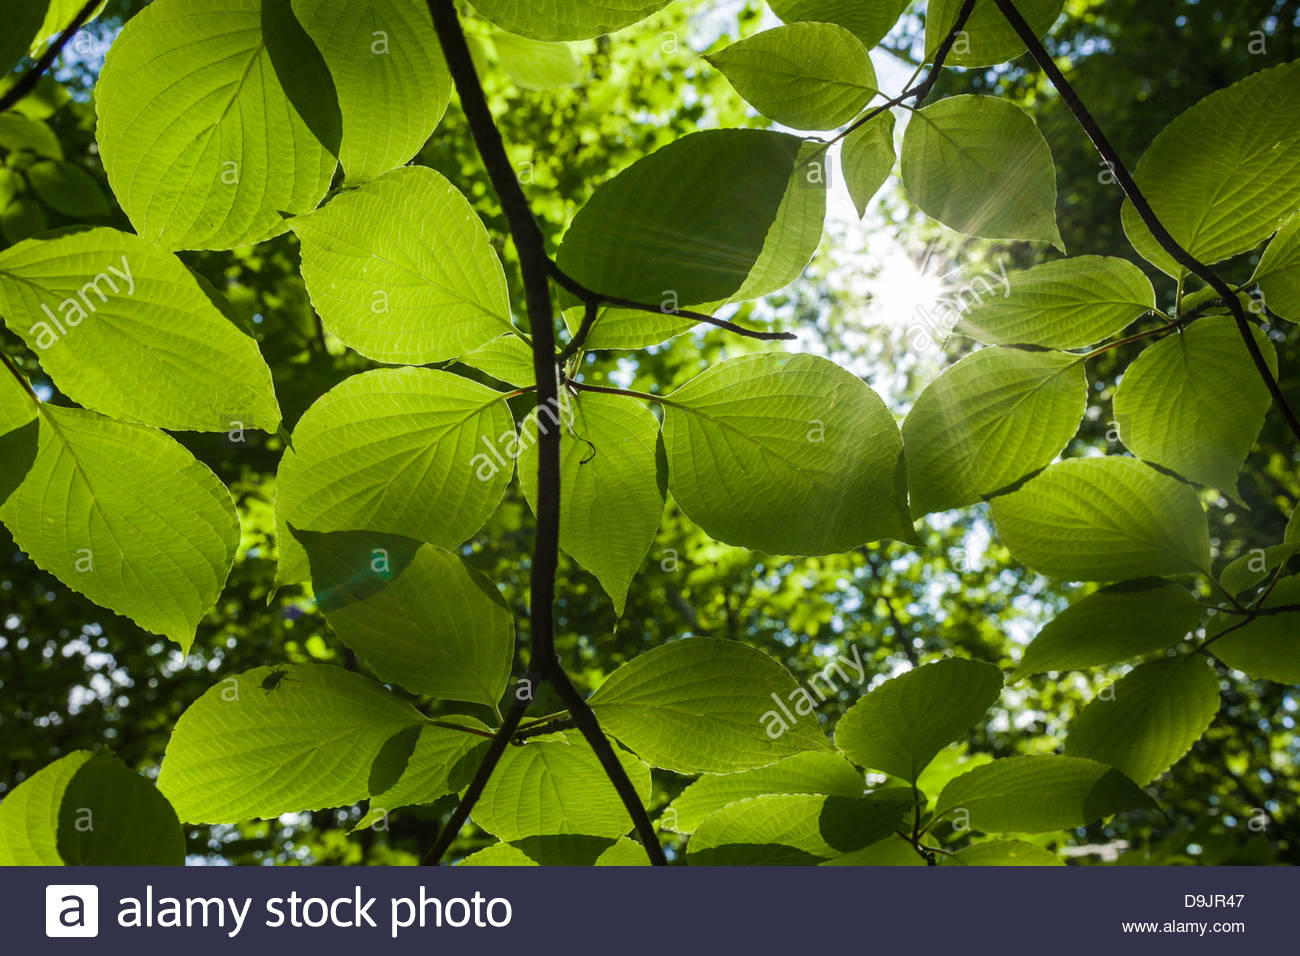 Photosynthesis Stock Photos & Photosynthesis Stock Images ...